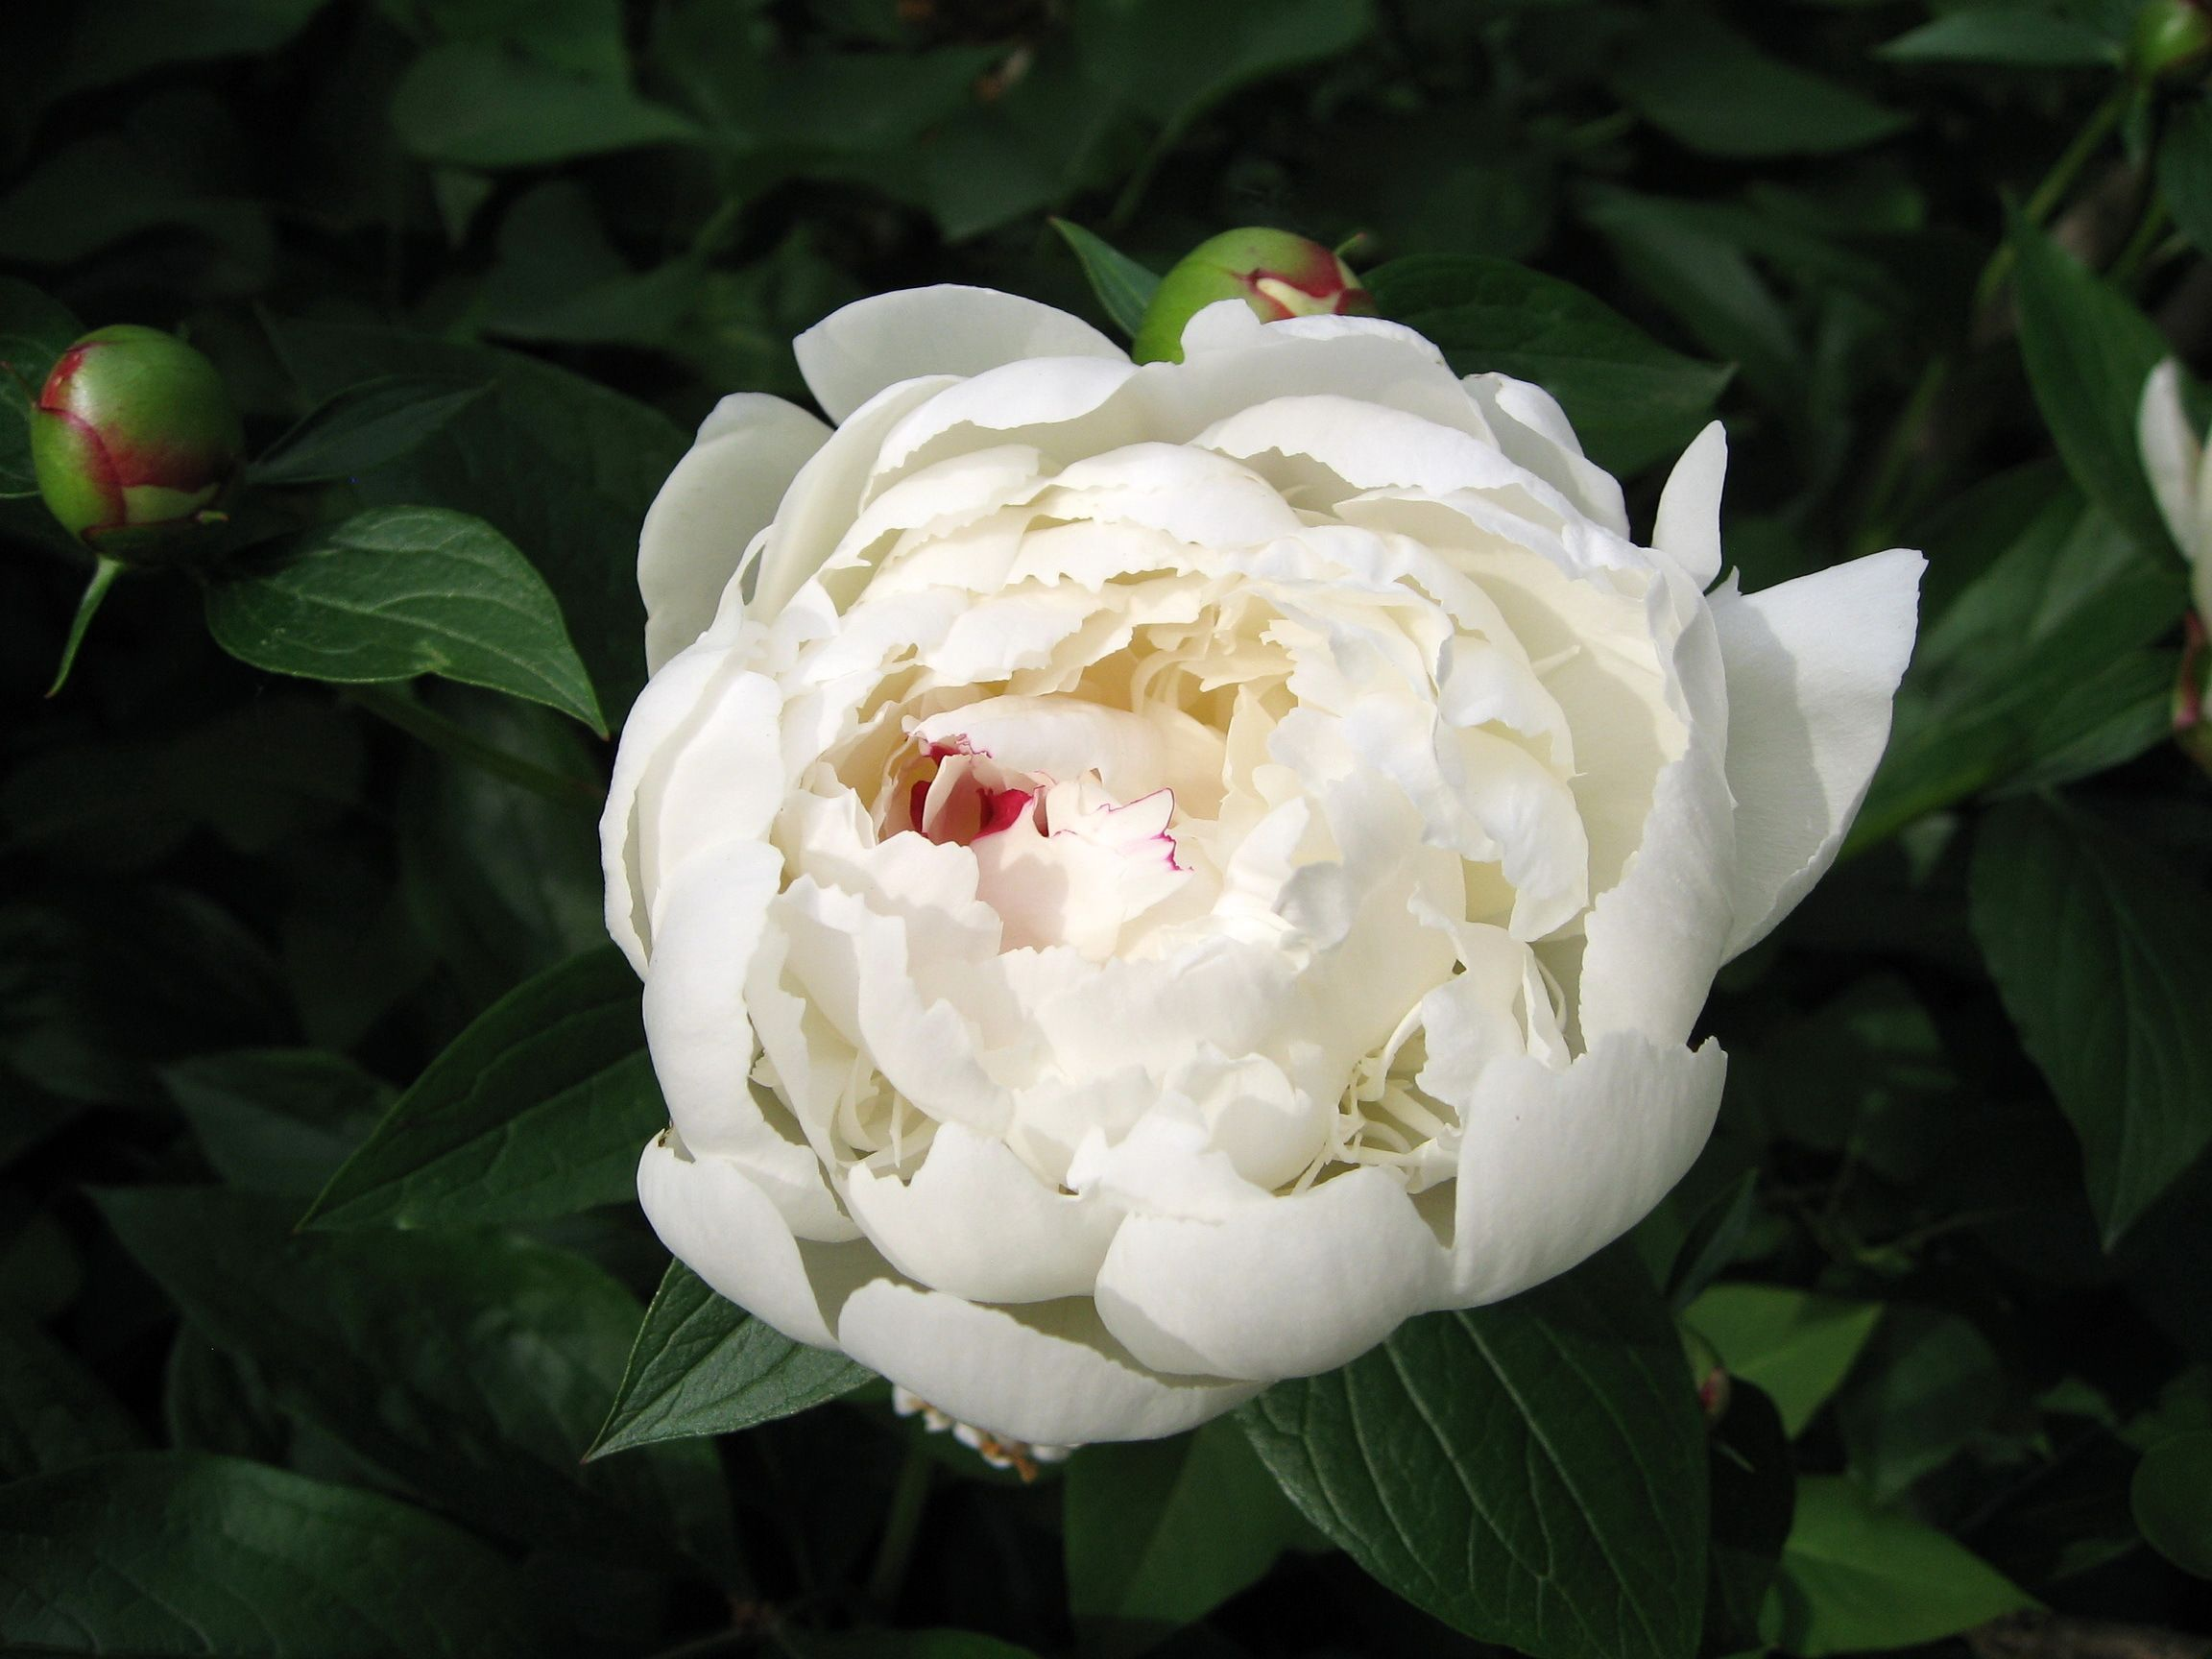 010 flowers white flowers white pinterest white peonies 010 flowers white mightylinksfo Image collections